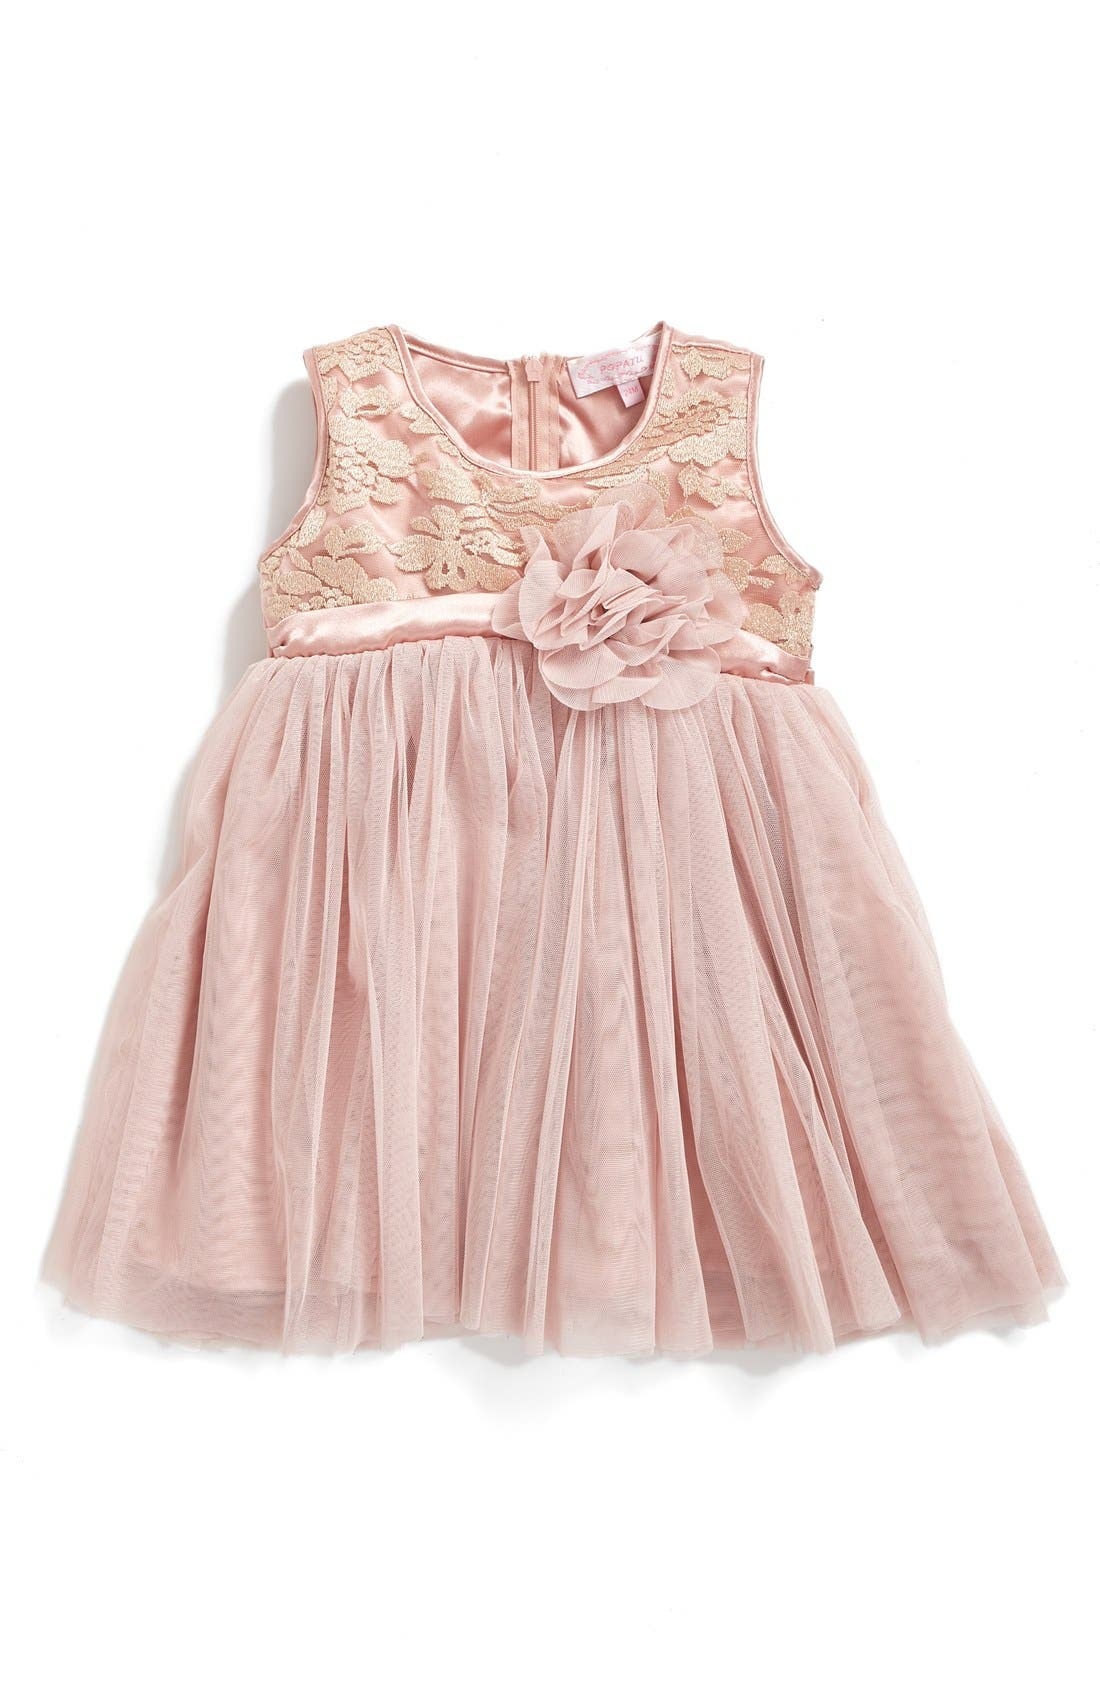 Empire Waist Tulle Dress,                             Main thumbnail 1, color,                             DUSTY PINK